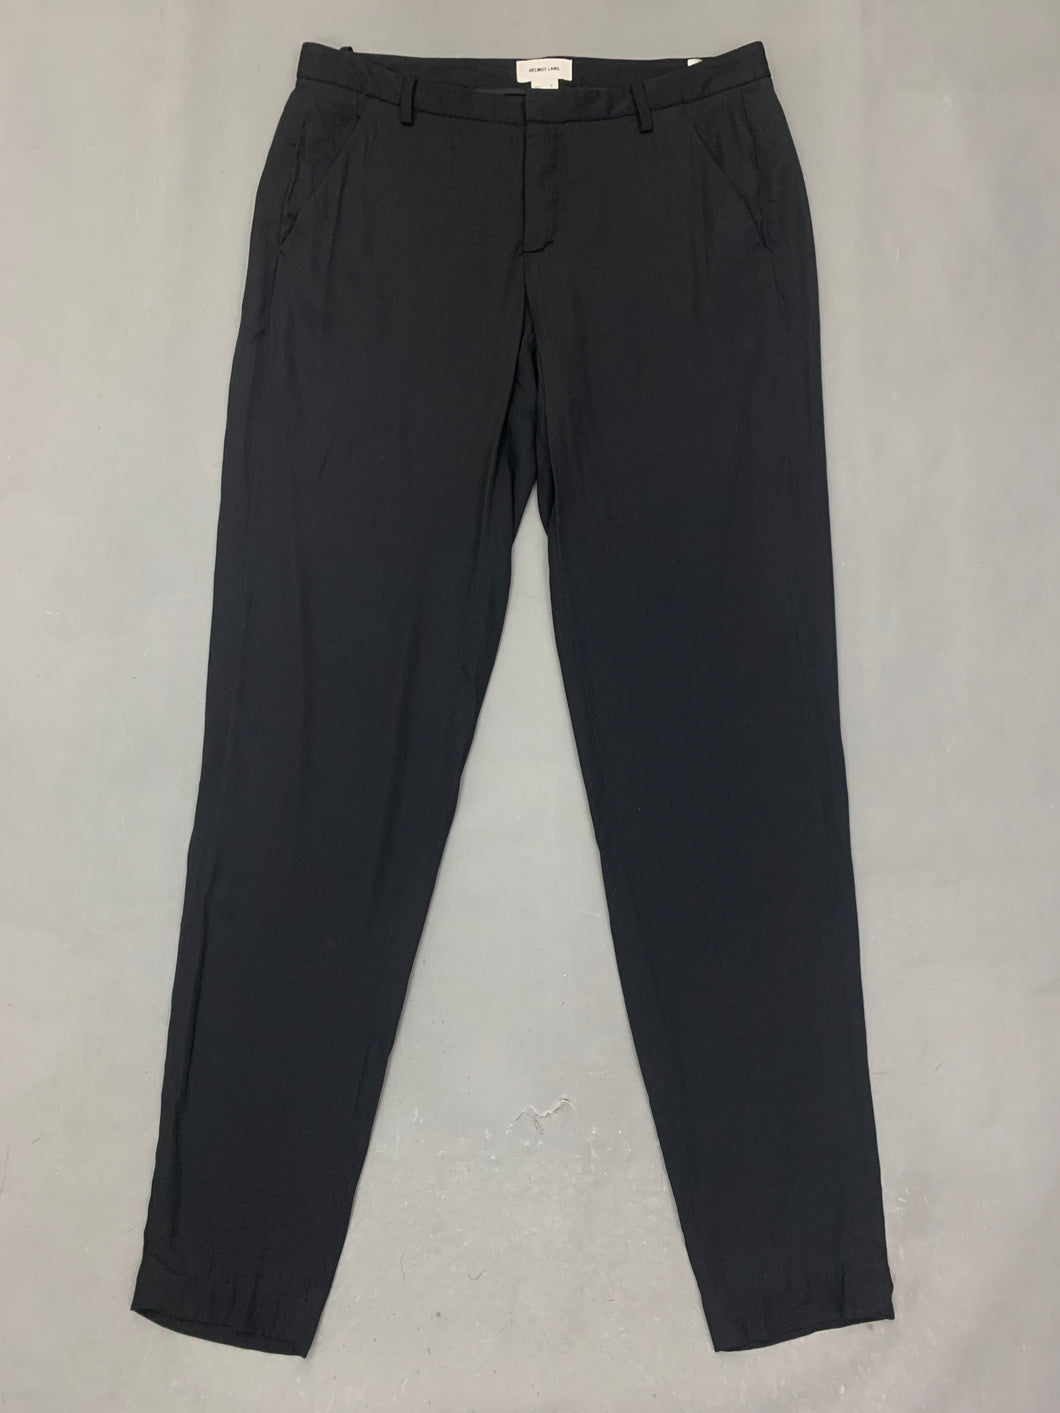 HELMUT LANG Ladies Black TROUSERS - Size US 6 - UK 10